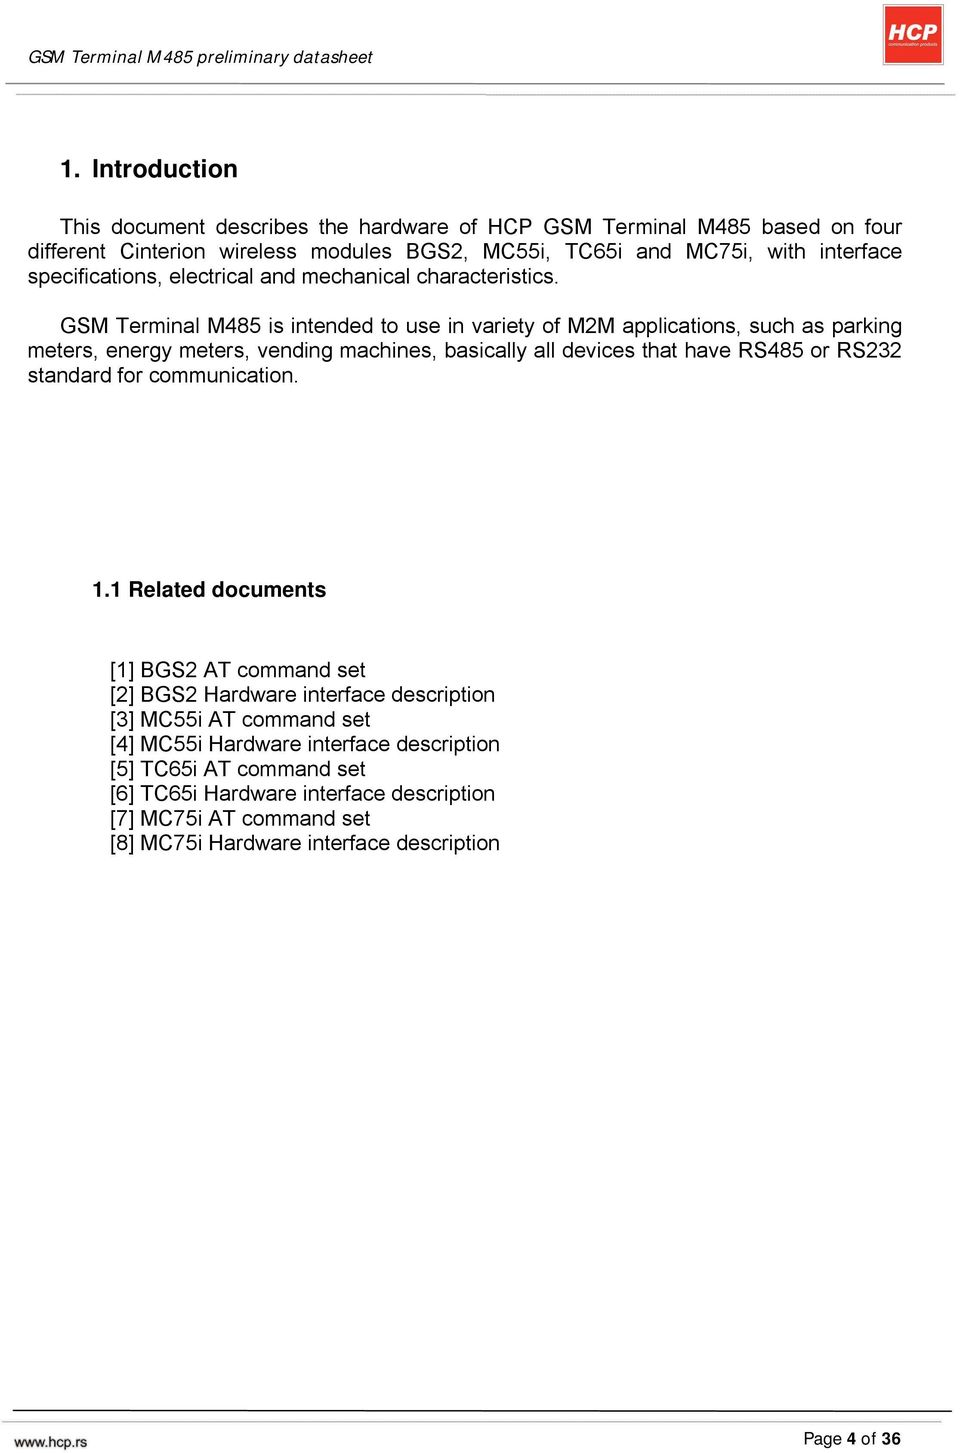 Gsm Terminal M485 Preliminary Datasheet Pdf 4541 Is Intended To Use In Variety Of M2m Applications Such As Parking